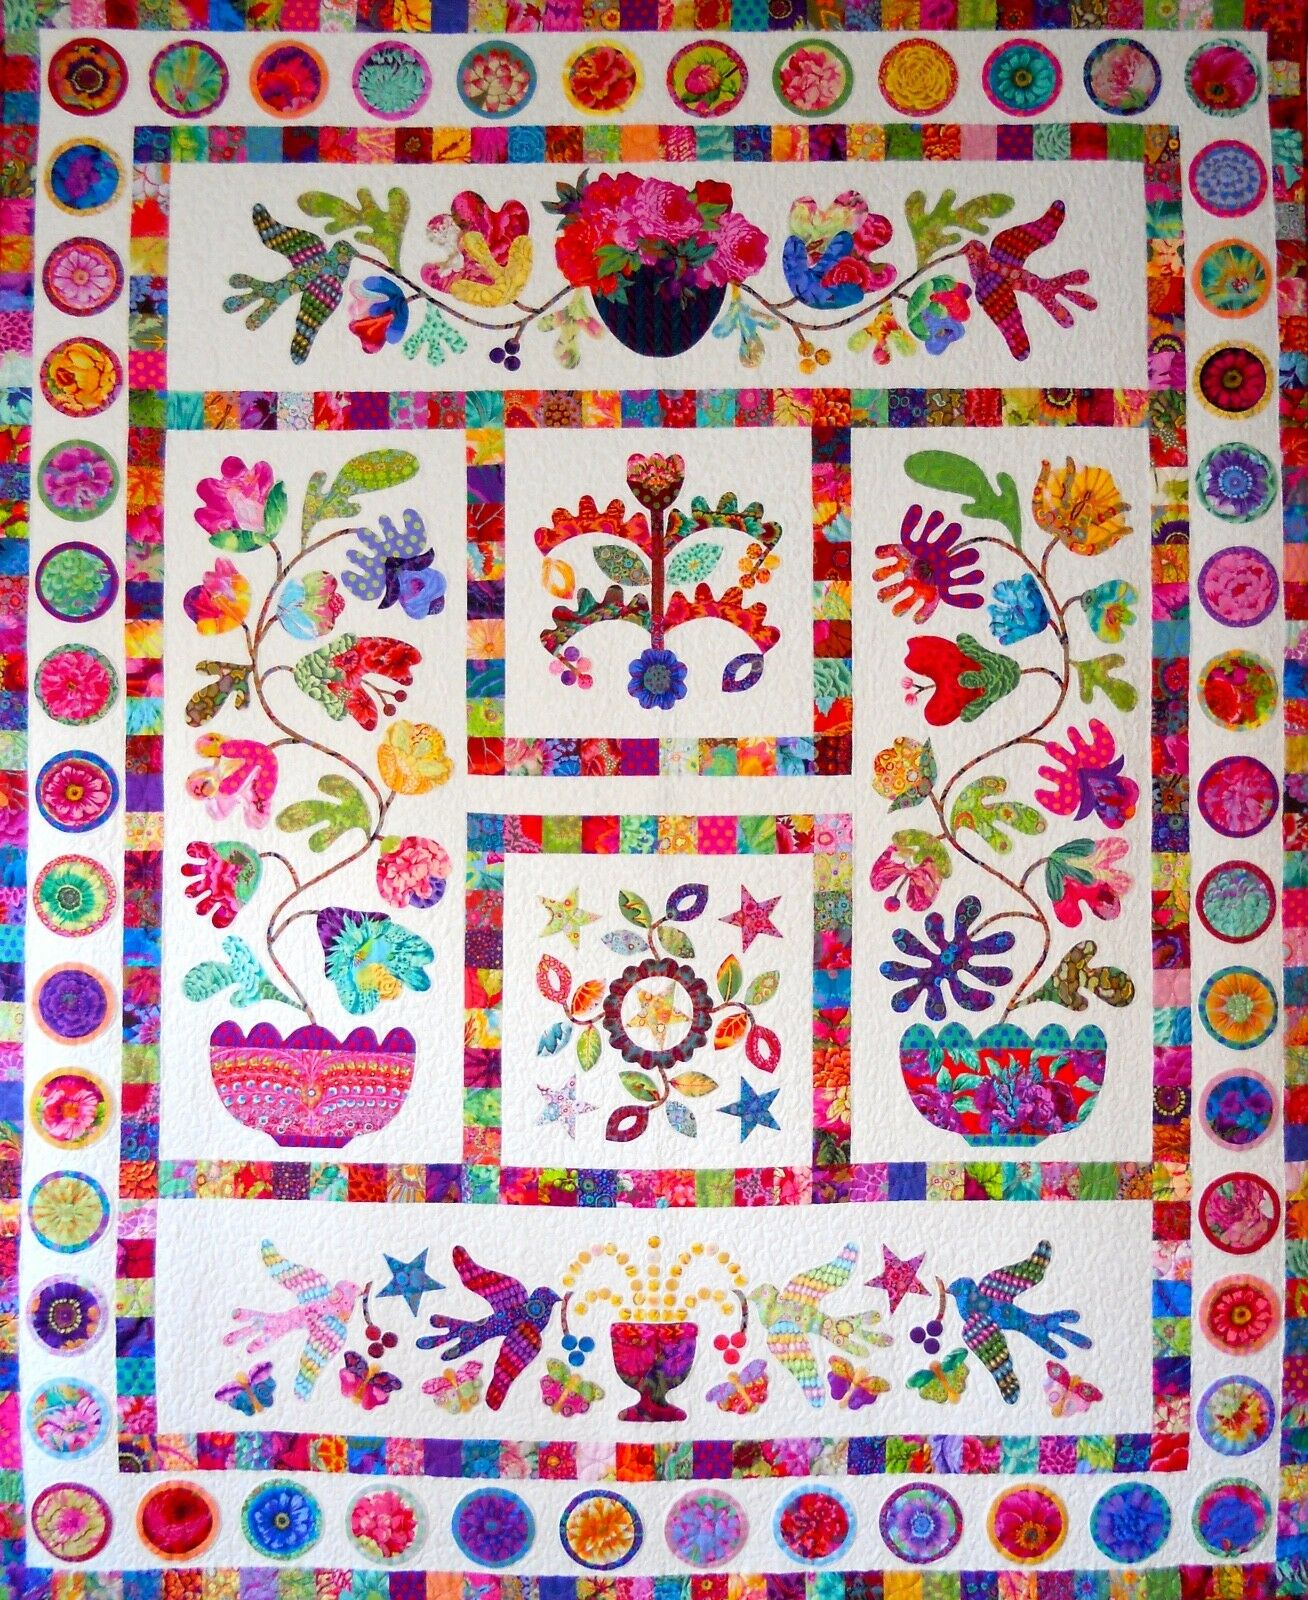 Flower Applique Quilt Patterns Amazing Design